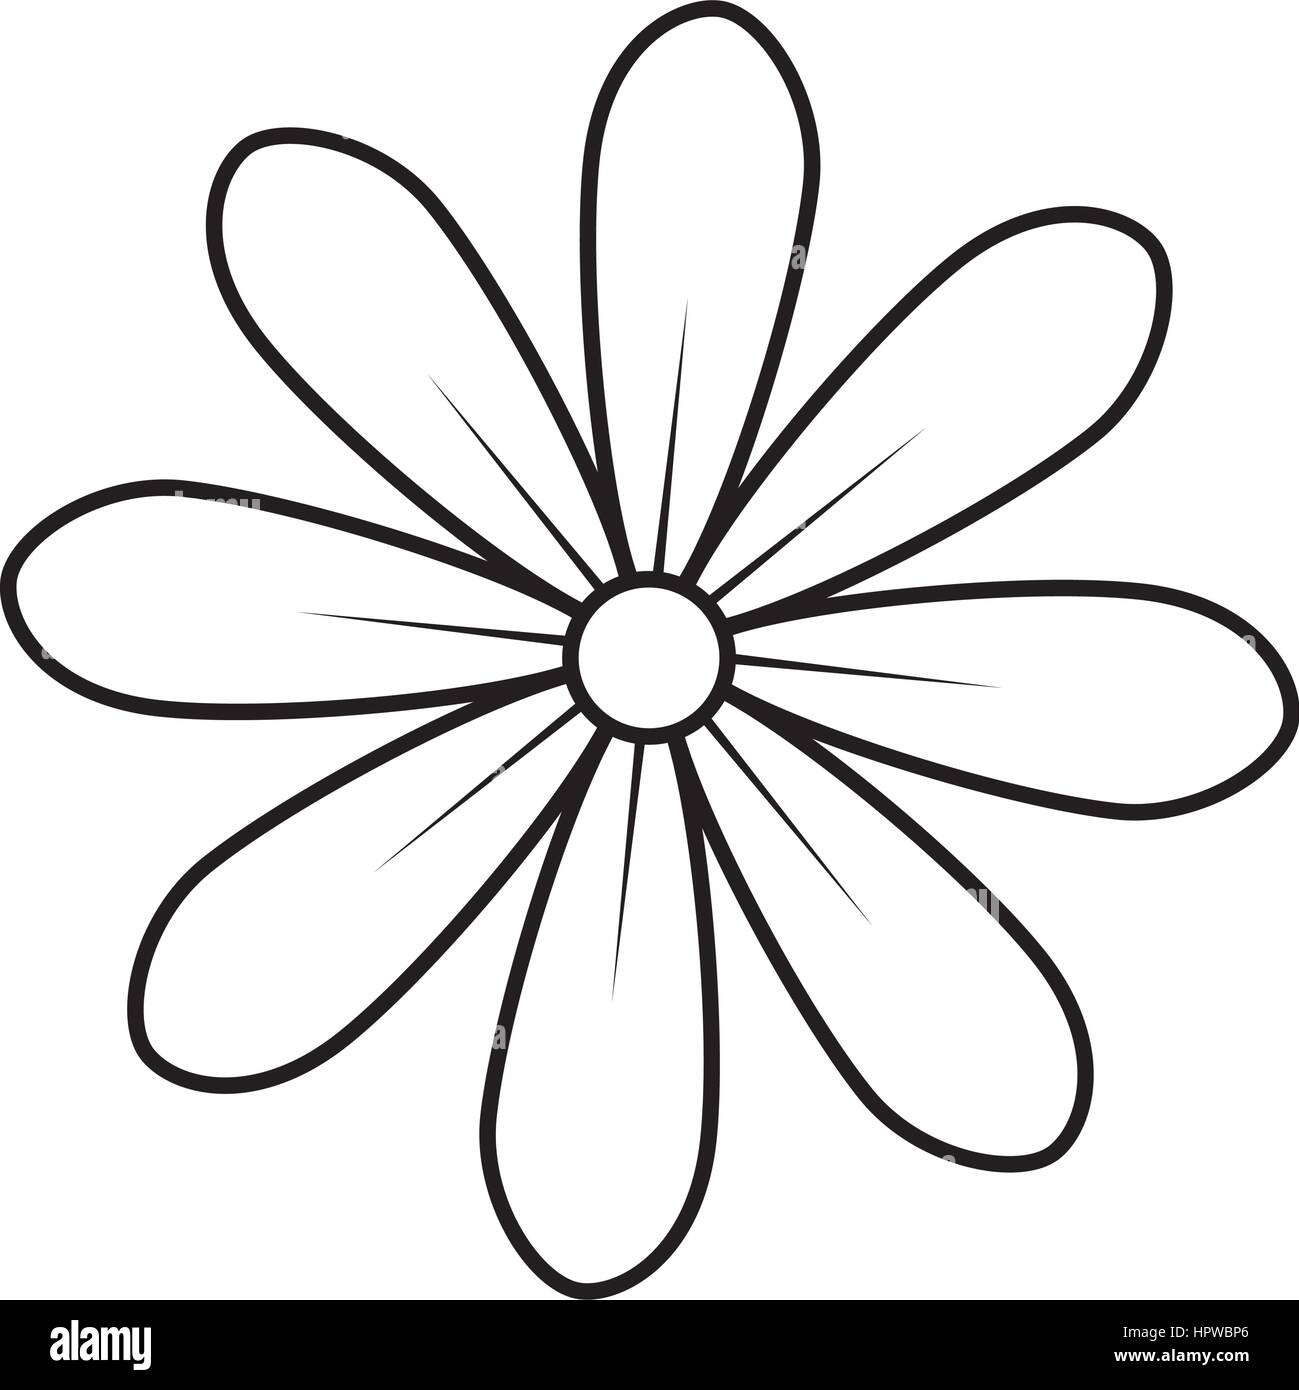 Monochrome Contour Of Daisy Flower Icon Floral Design Stock Vector